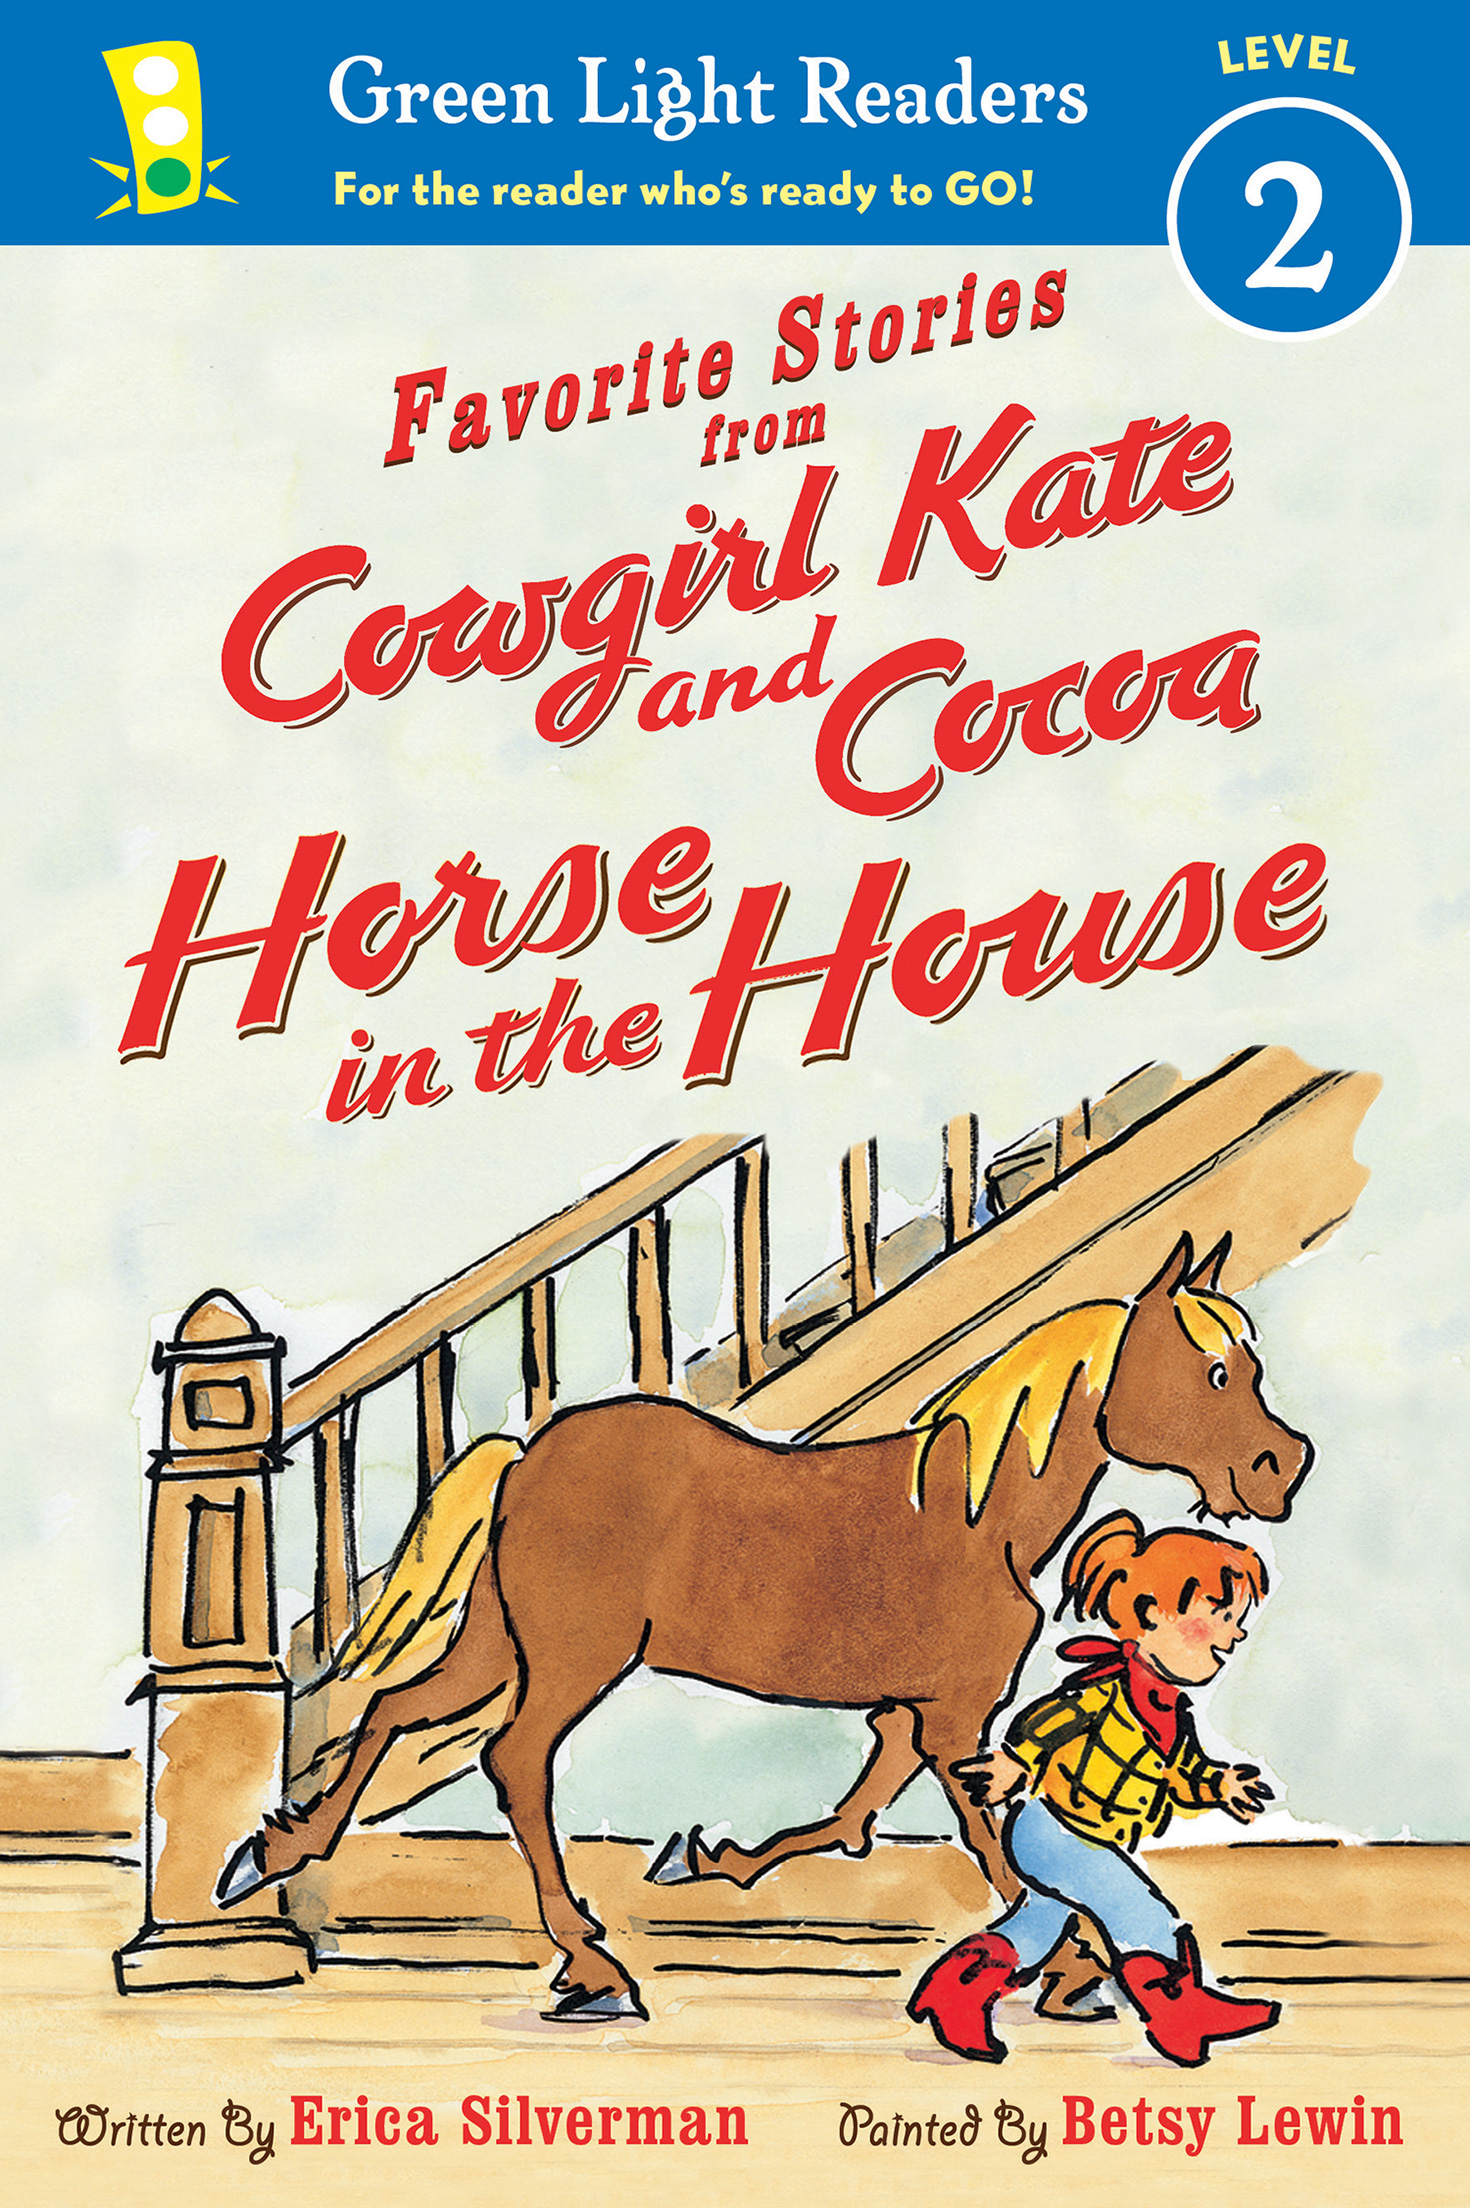 Favorite Stories from Cowgirl Kate and Cocoa: Horse in the House (reader)-9781328895806